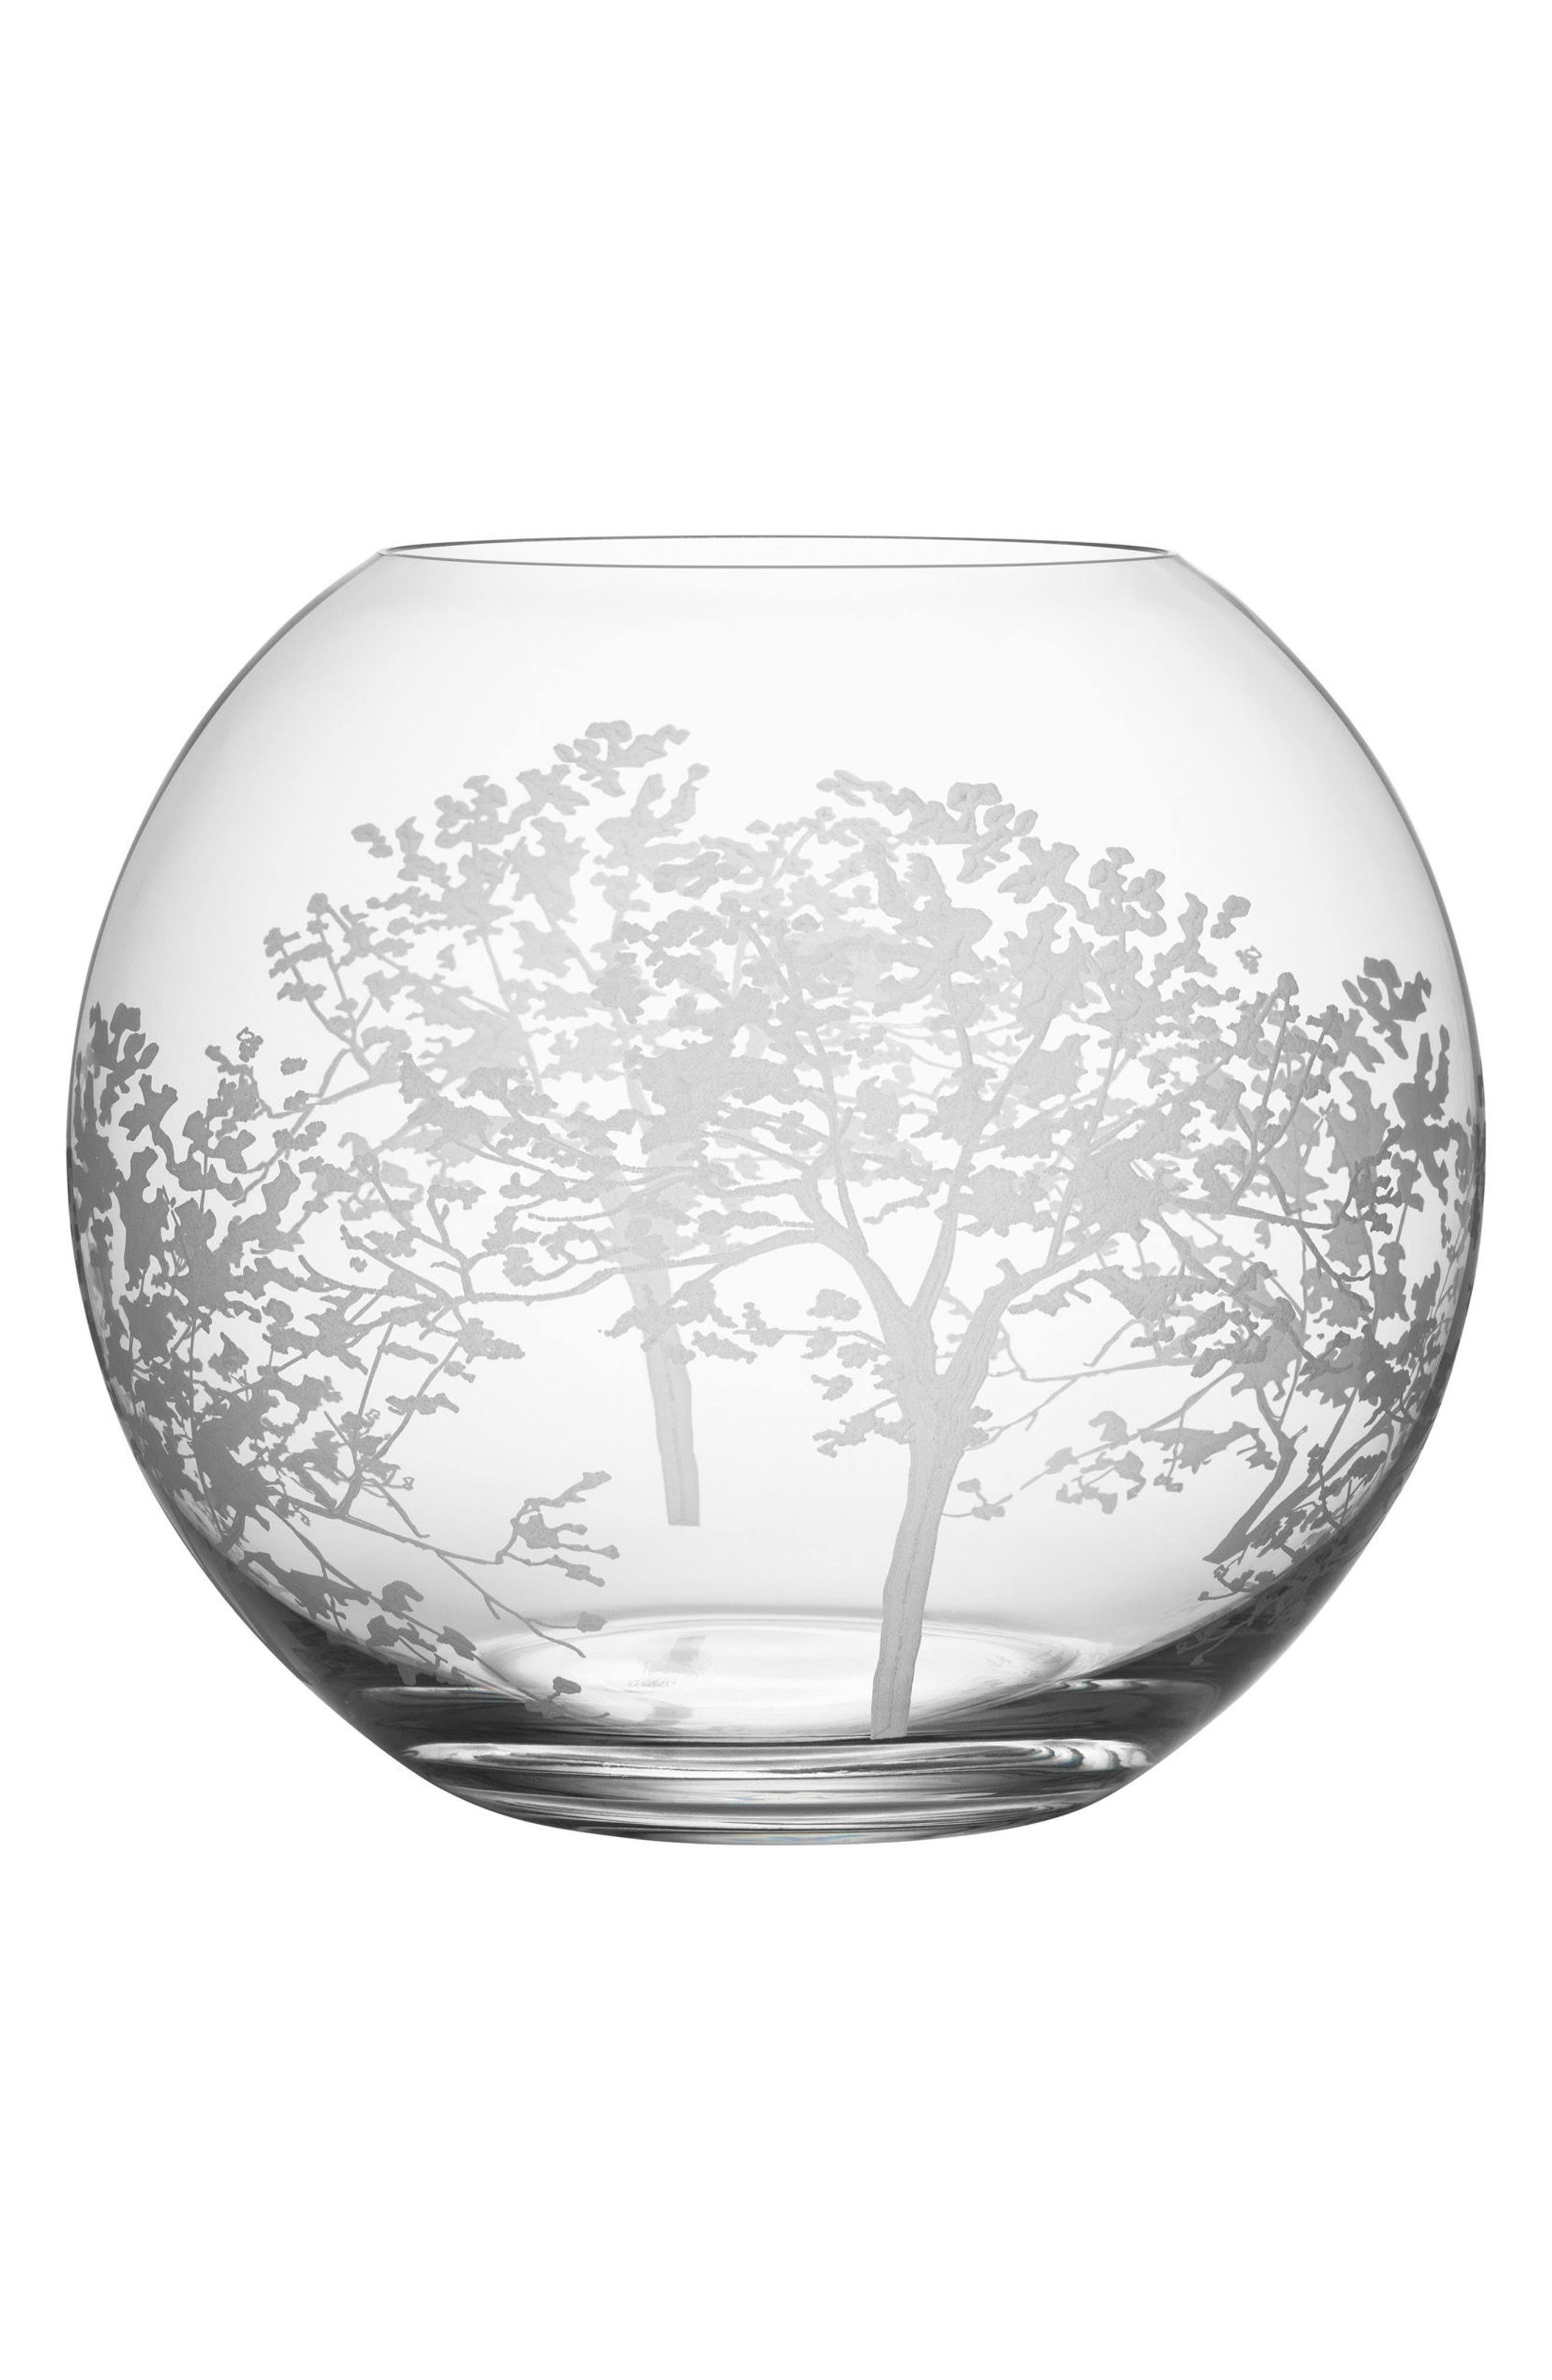 Organic Round Vase,                         Main,                         color, Clear